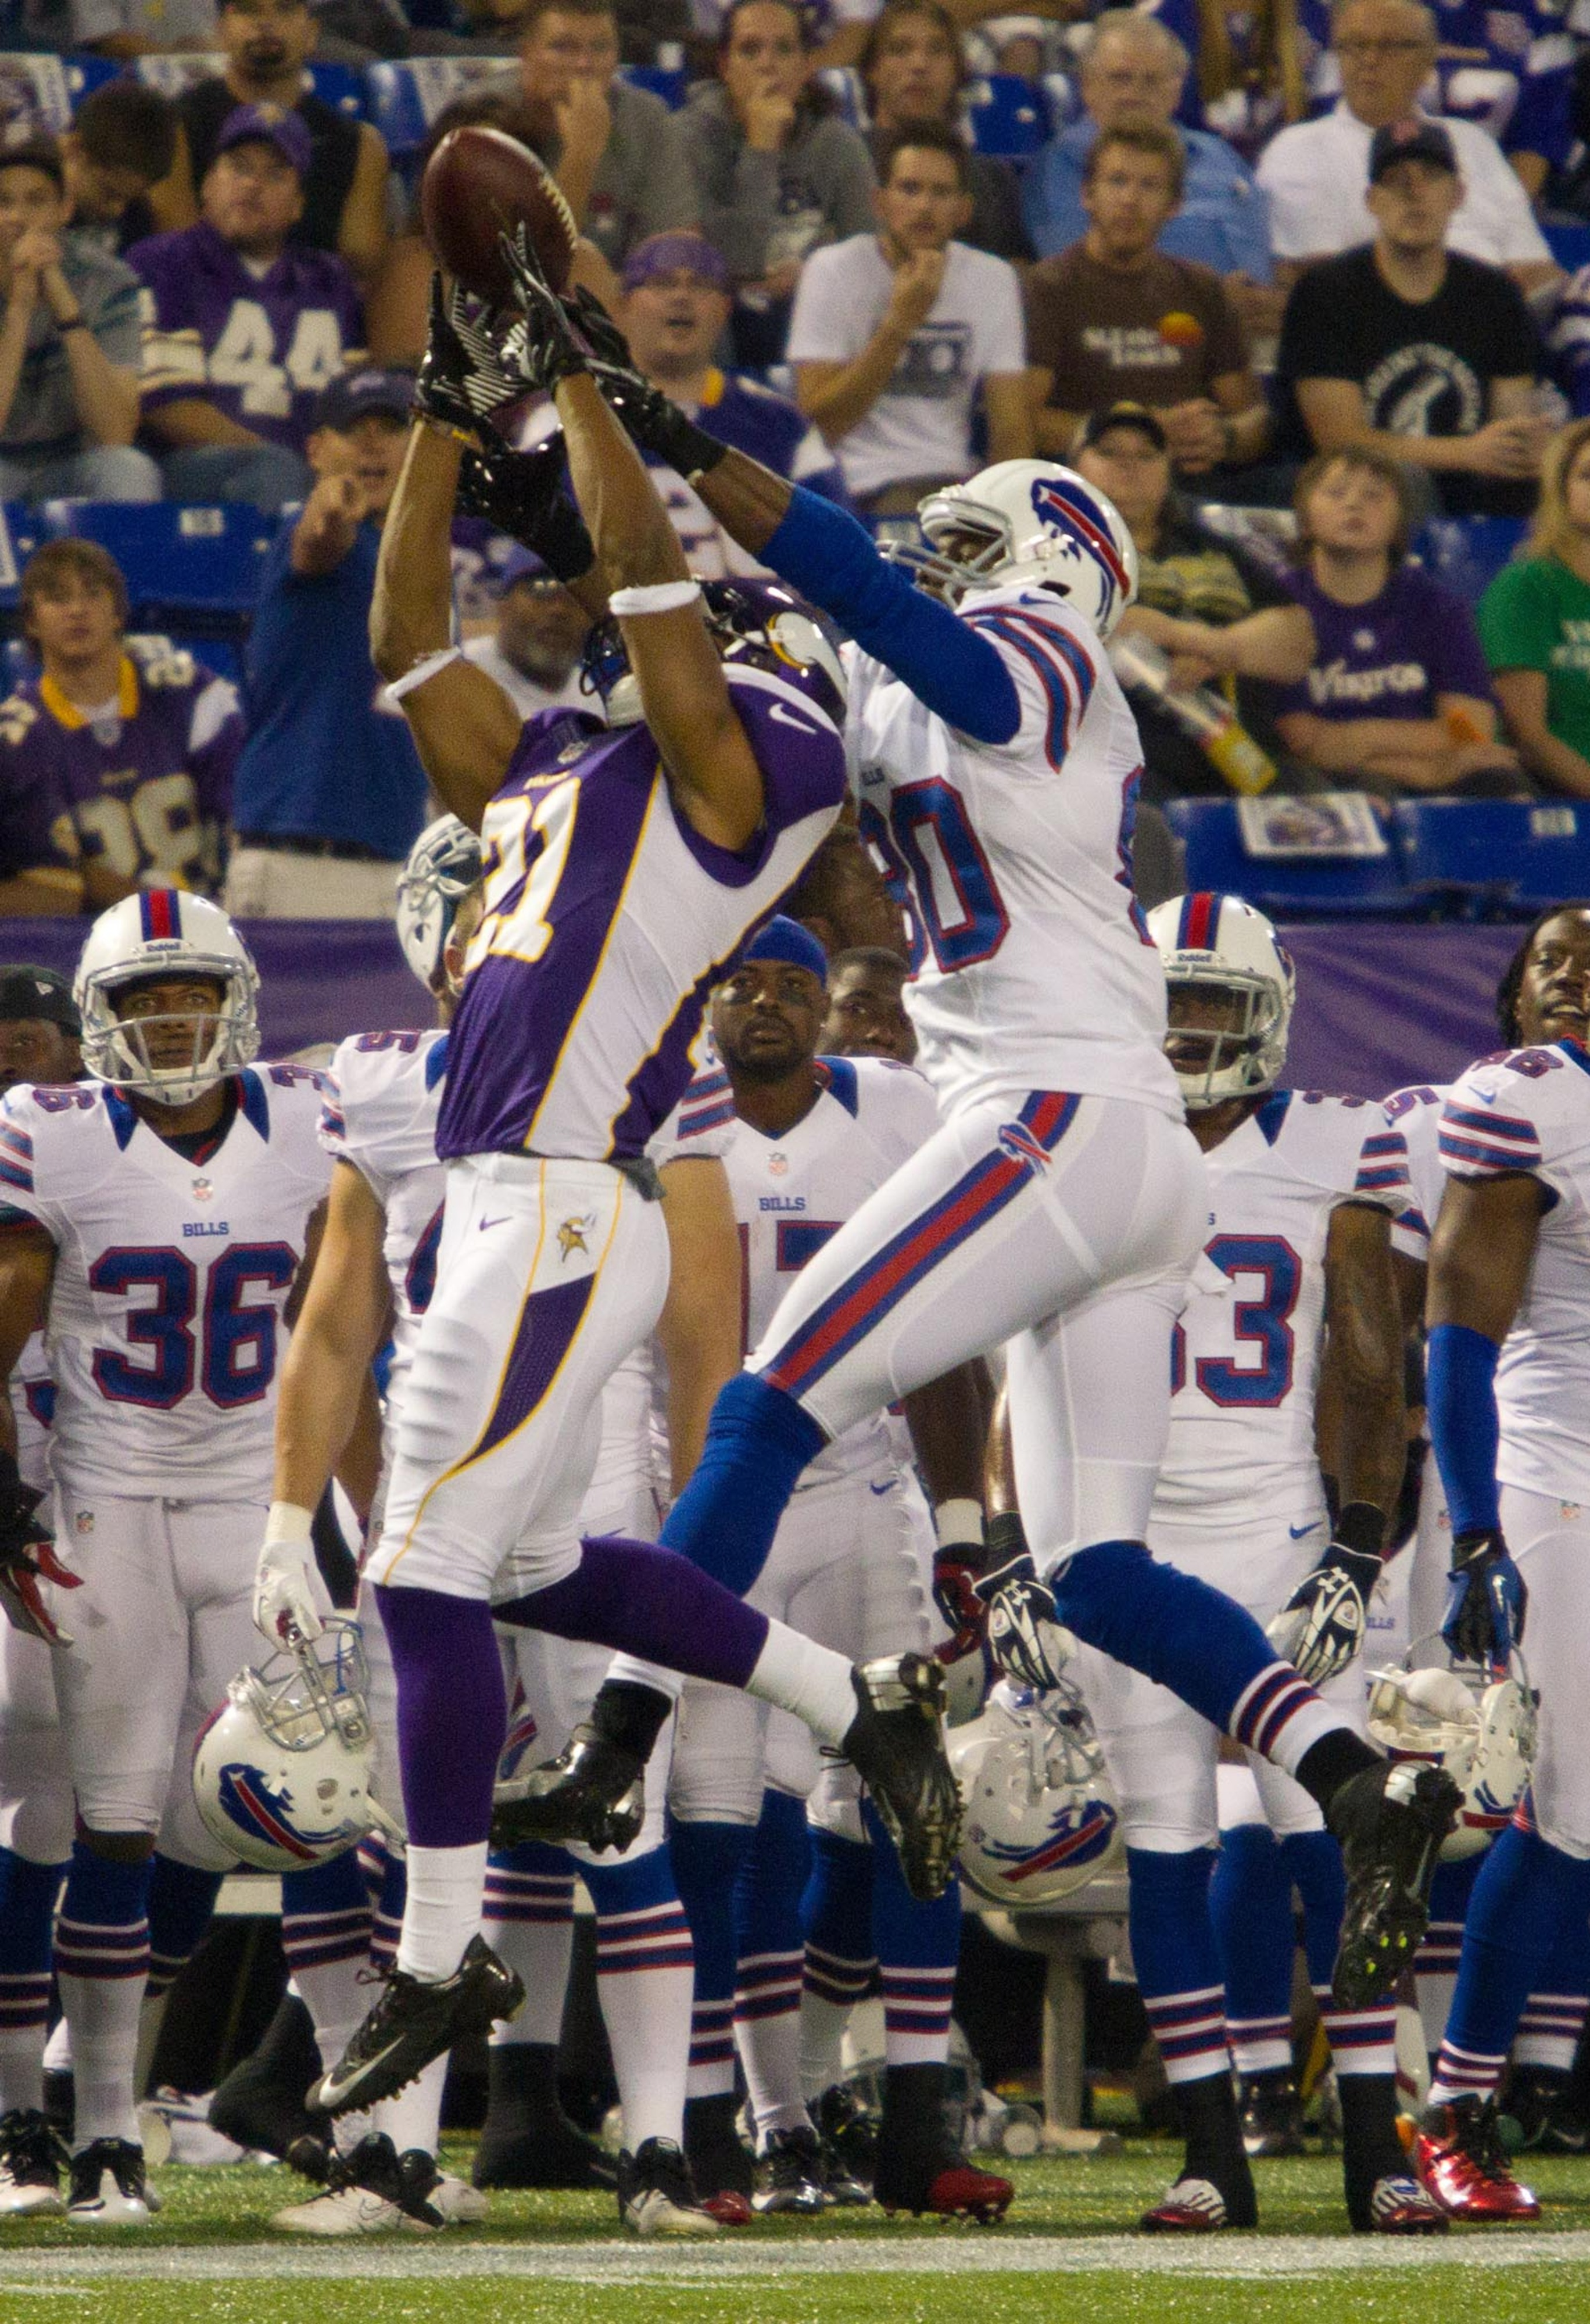 The Minnesota Vikings will likely need big improvement in the secondary to be competitive in 2012, and rookie Josh Robinson will play a part in that. (Mandatory Credit: Brad Rempel-US PRESSWIRE)